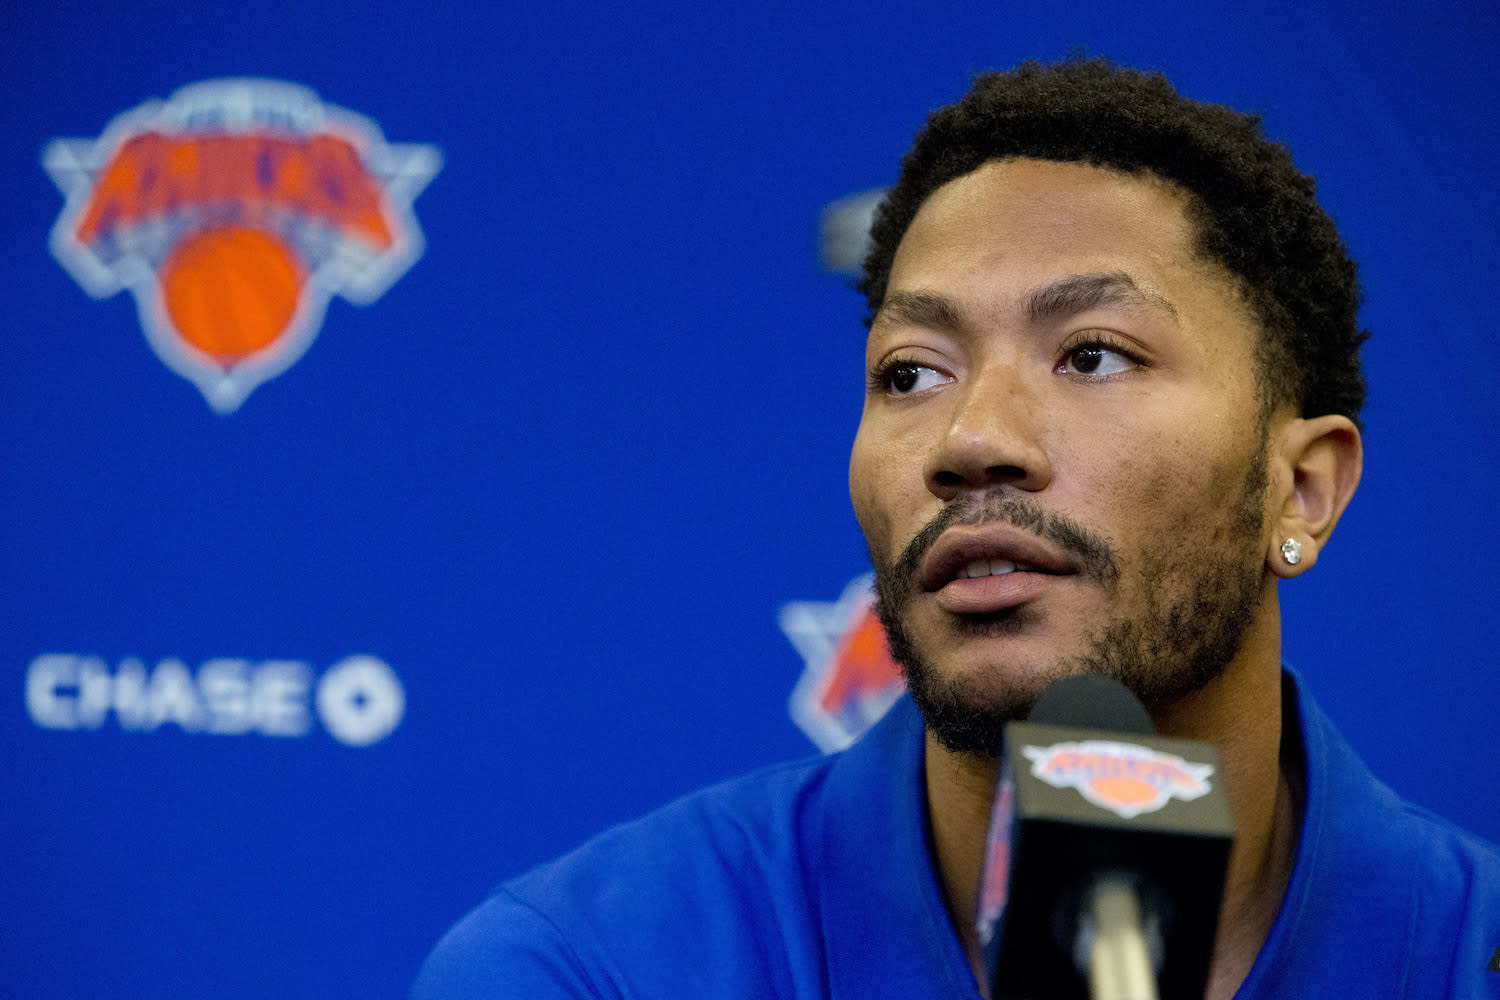 Jurors took photos with Derrick Rose less than an hour after finding him not guilty in civil rape trial